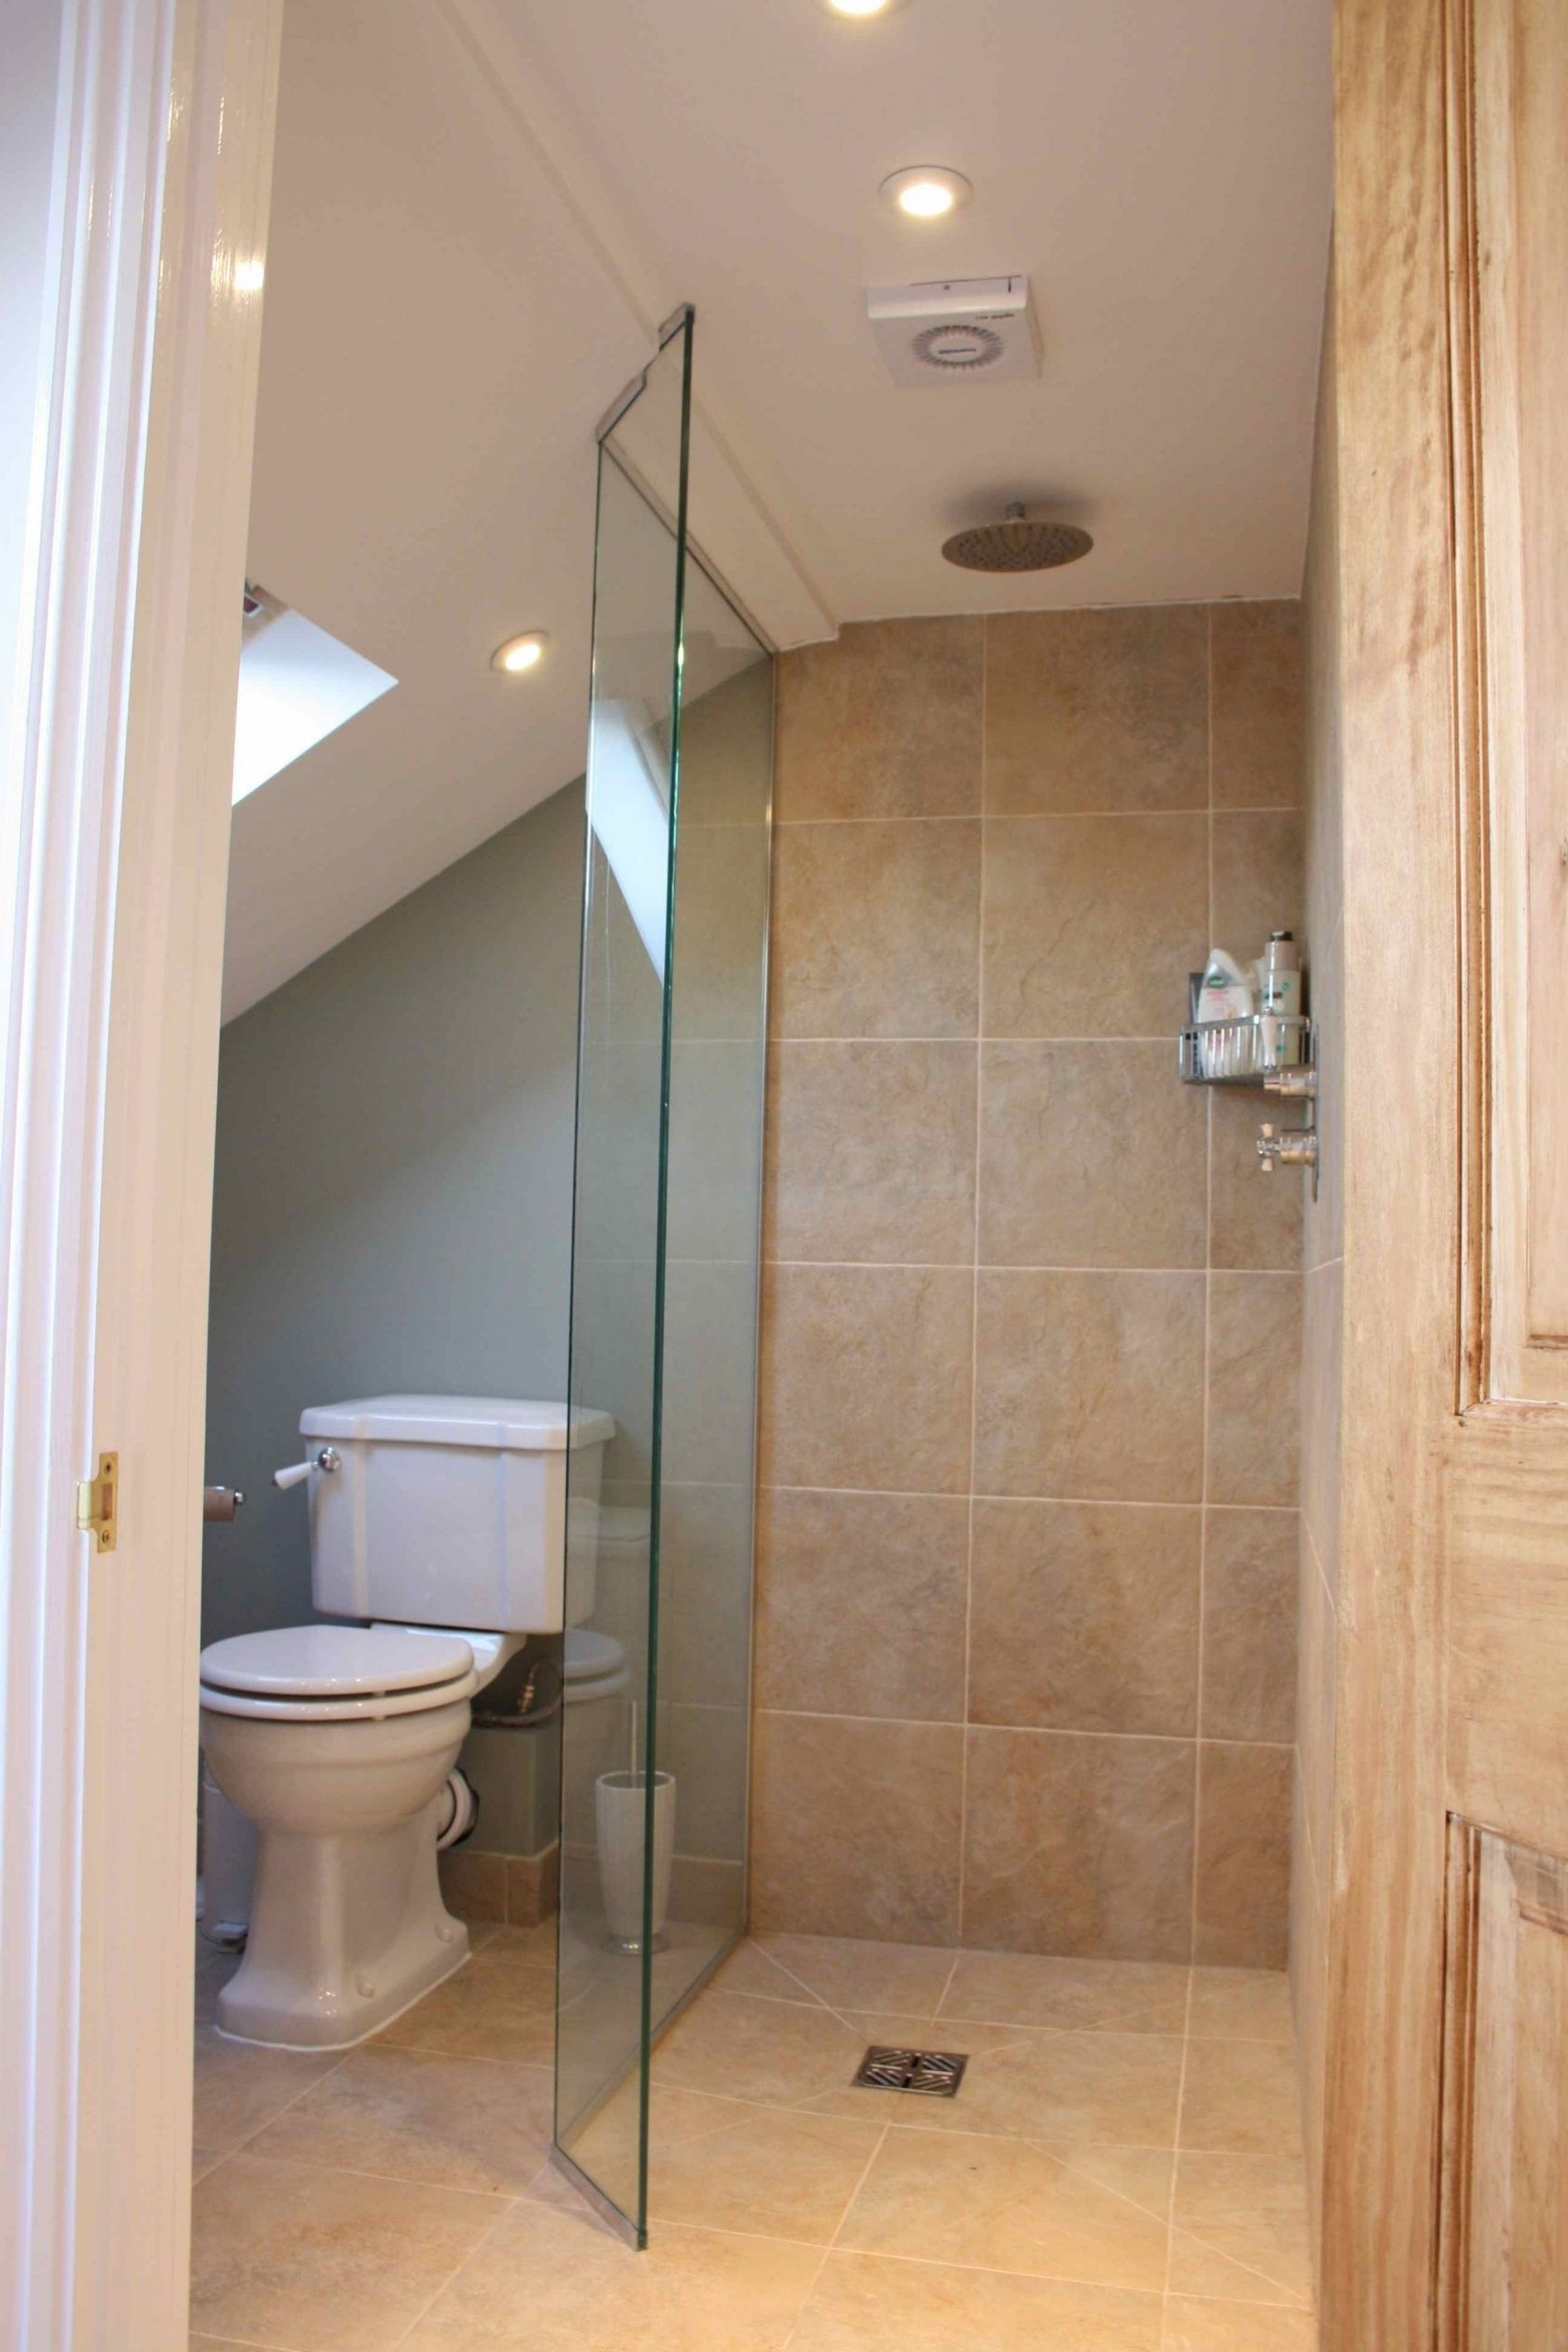 Loft Conversion Small Bathroom Ideas#Bathroom #Conversion Small Bathroom Loft Conversion